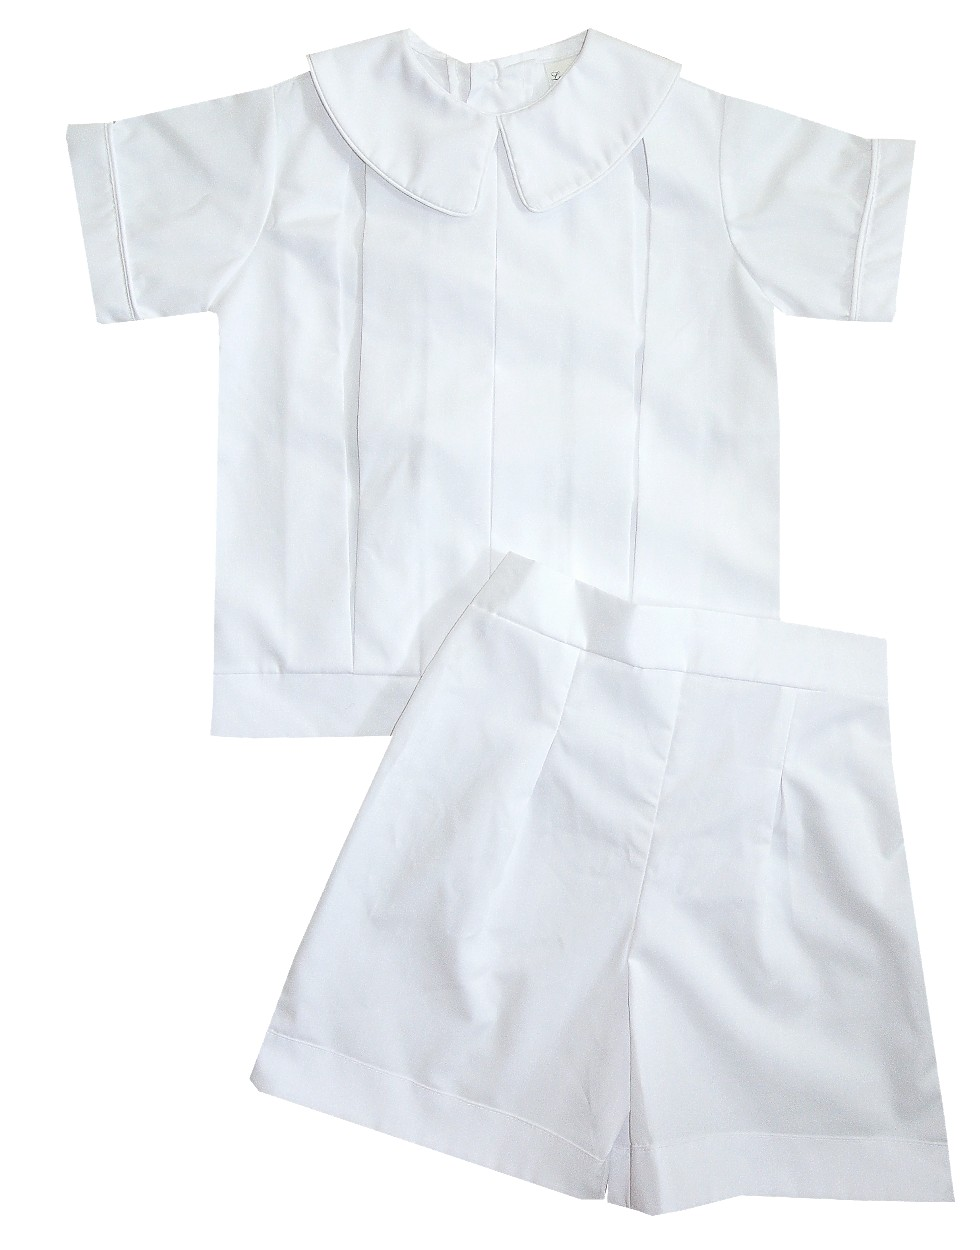 Heirloom Boys Pleated Peter Pan Collar Blouse Over Shorts